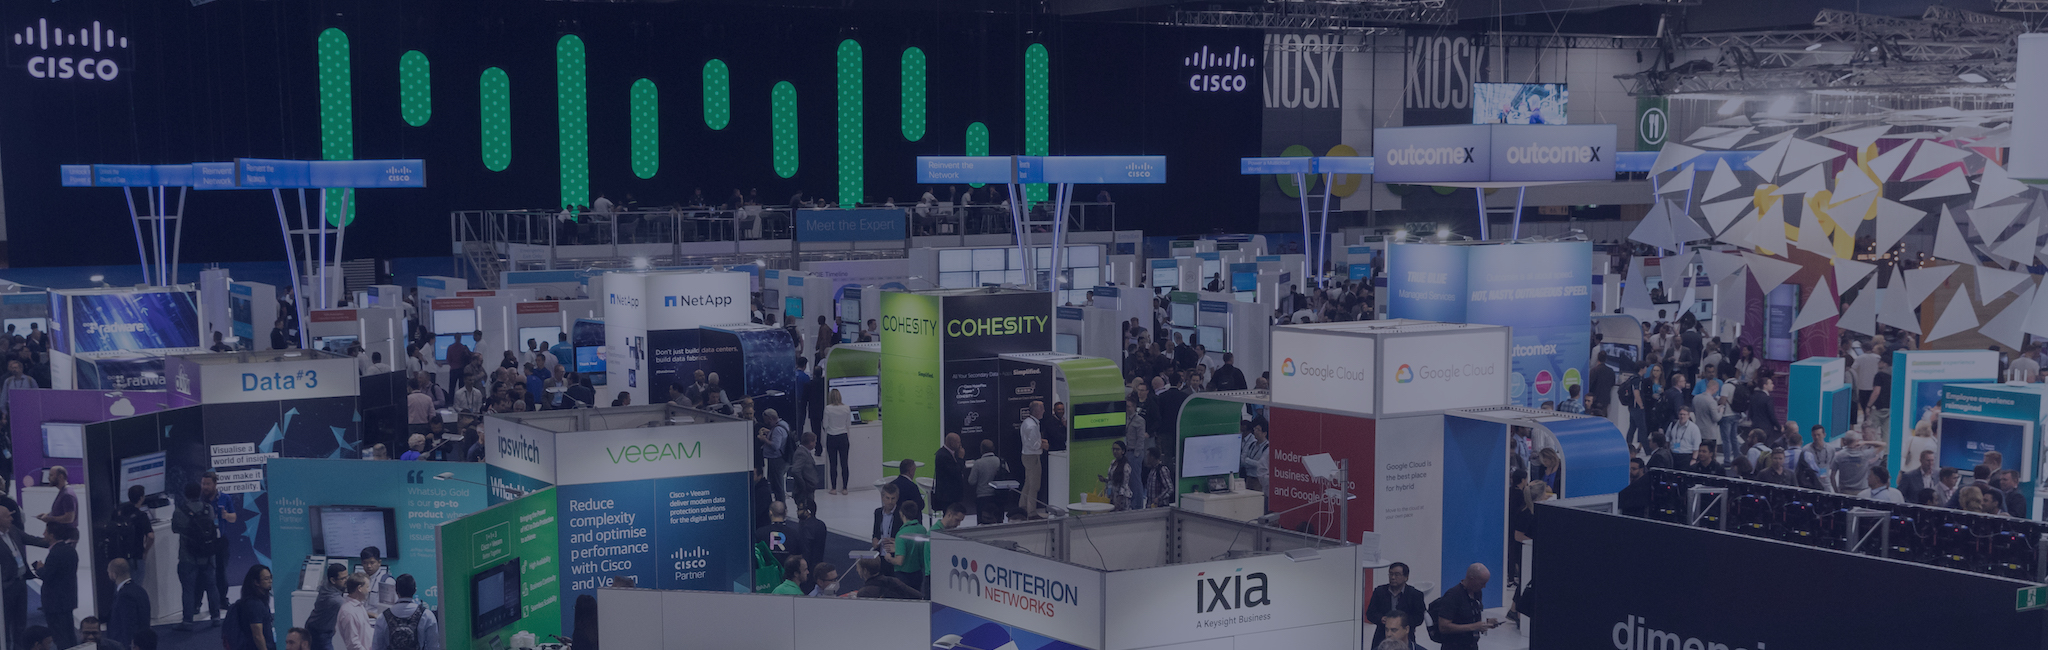 EXHIBIT AT CISCO LIVE